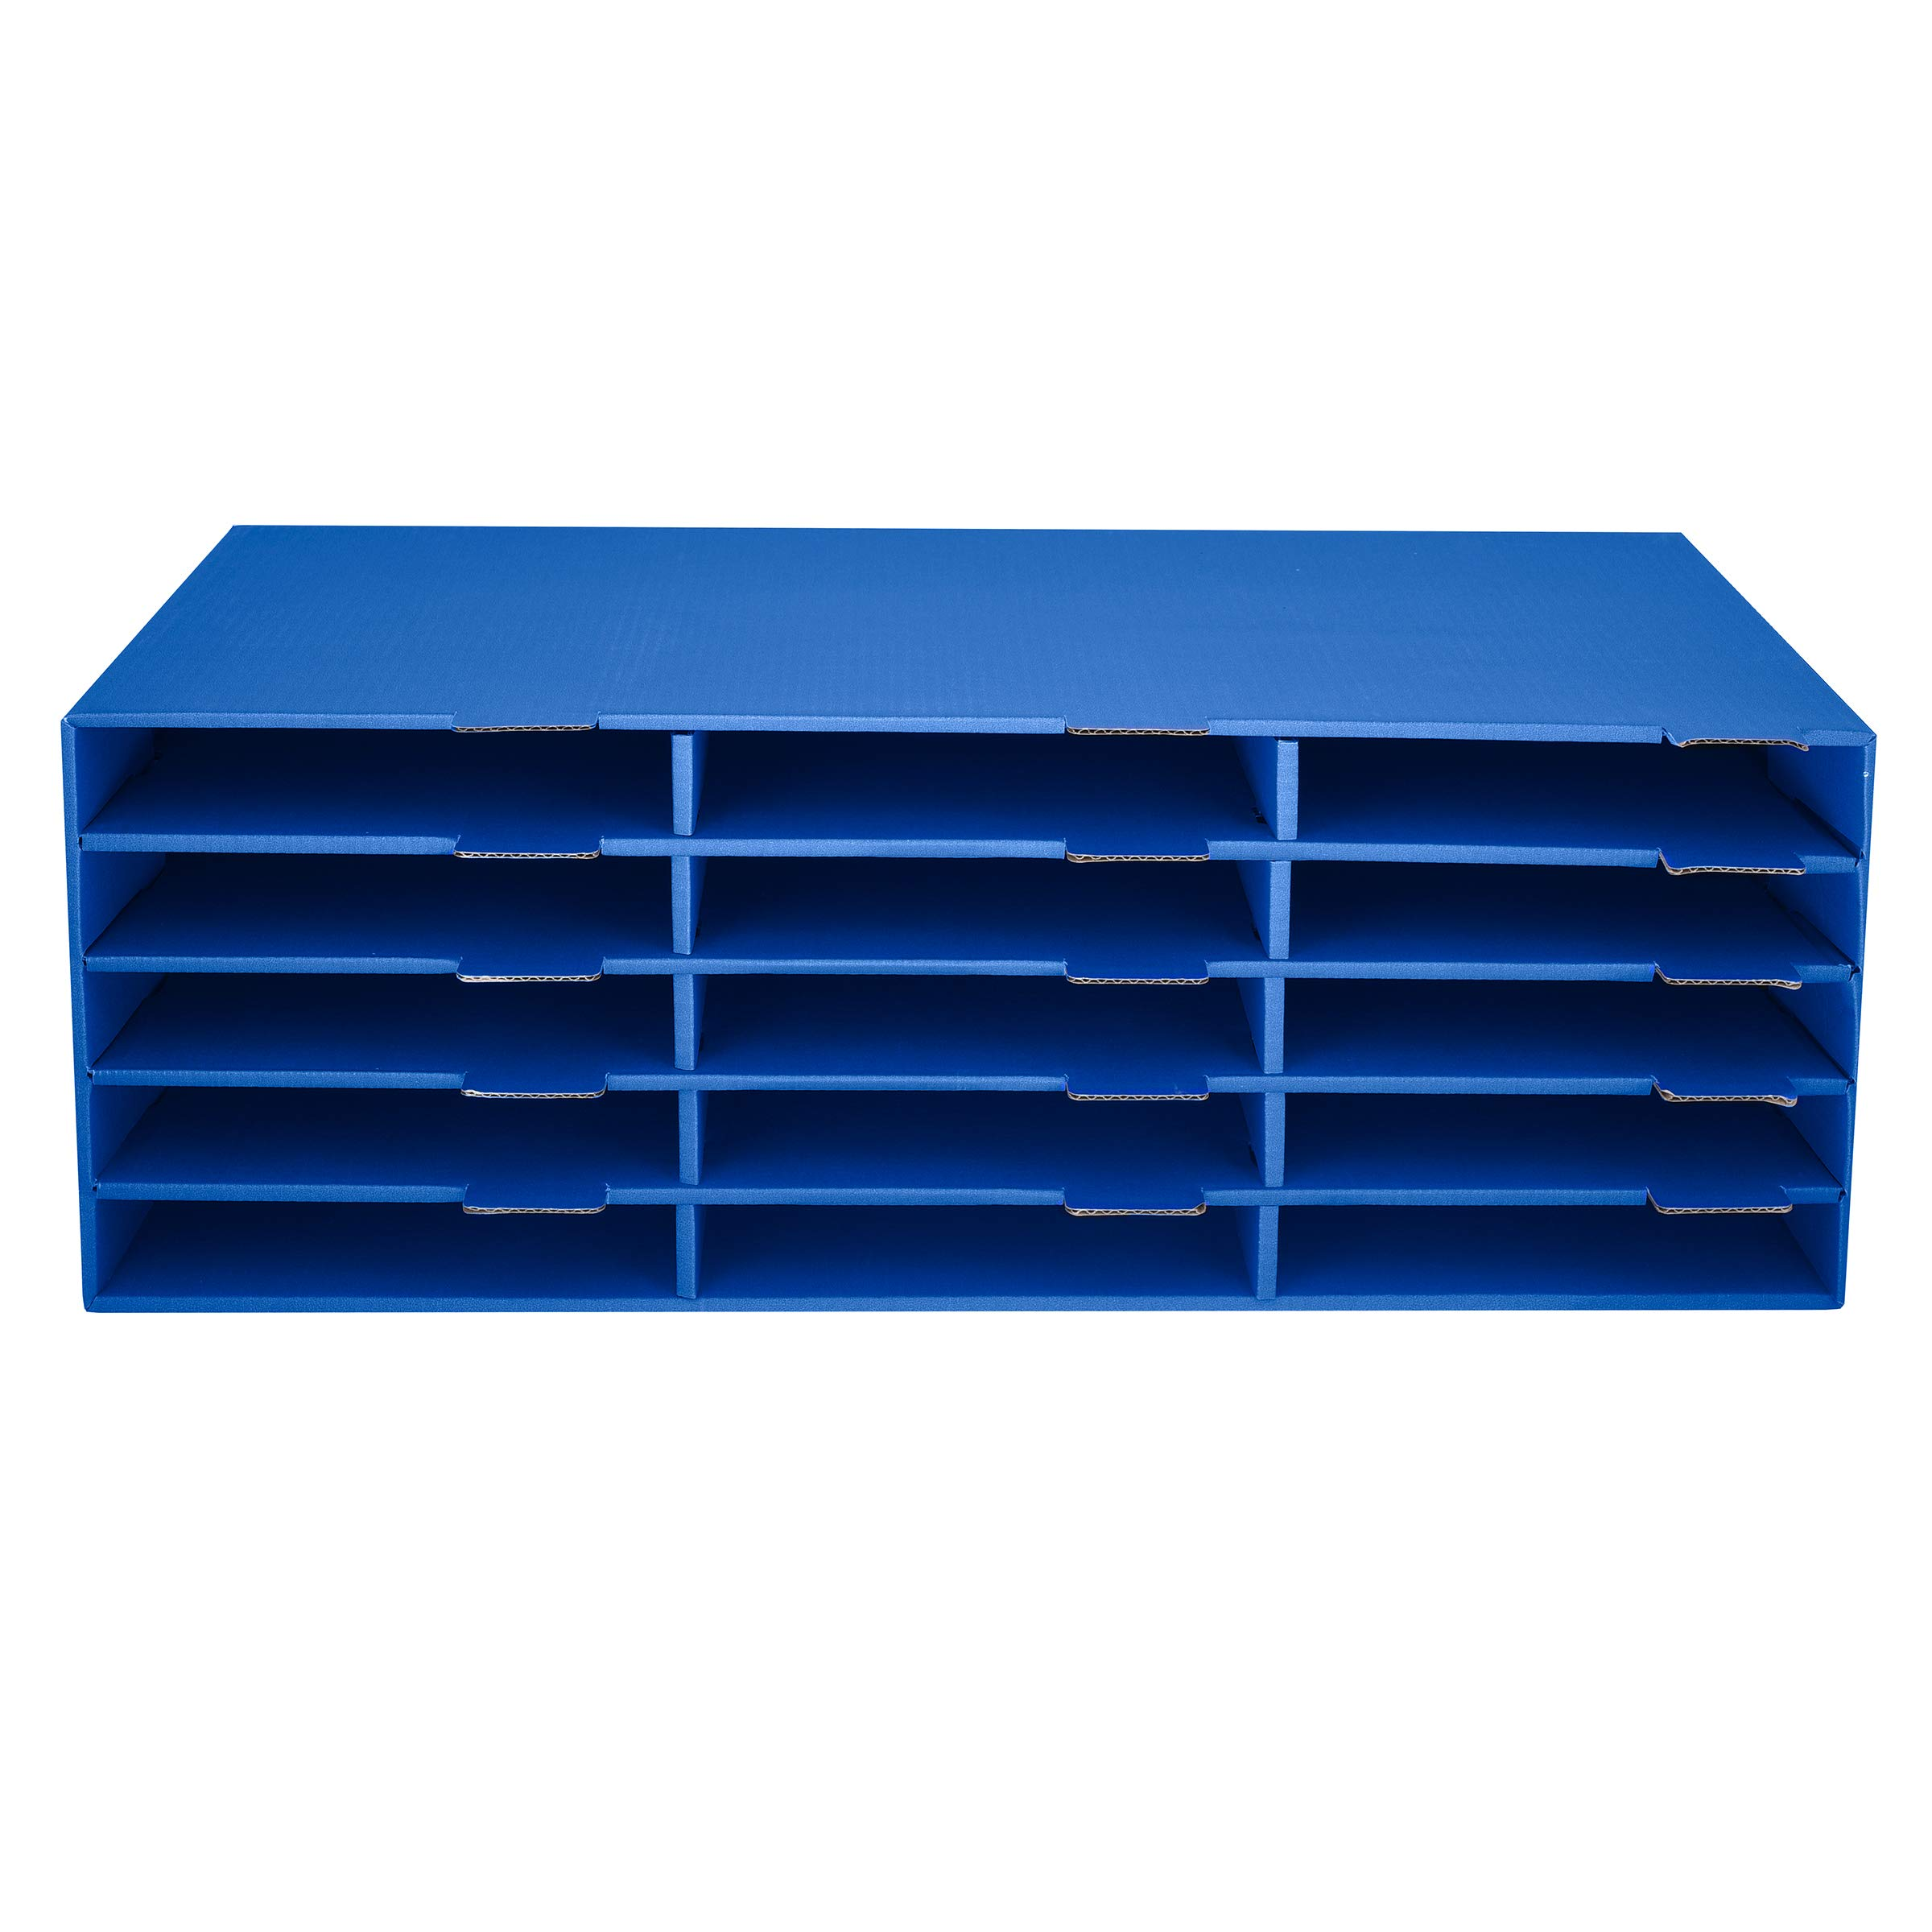 AdirOffice Construction Paper Storage Bin 9½'' x 29'' - 15 Slot Vertical File Compartment - Organizer for Home & Office - Blue